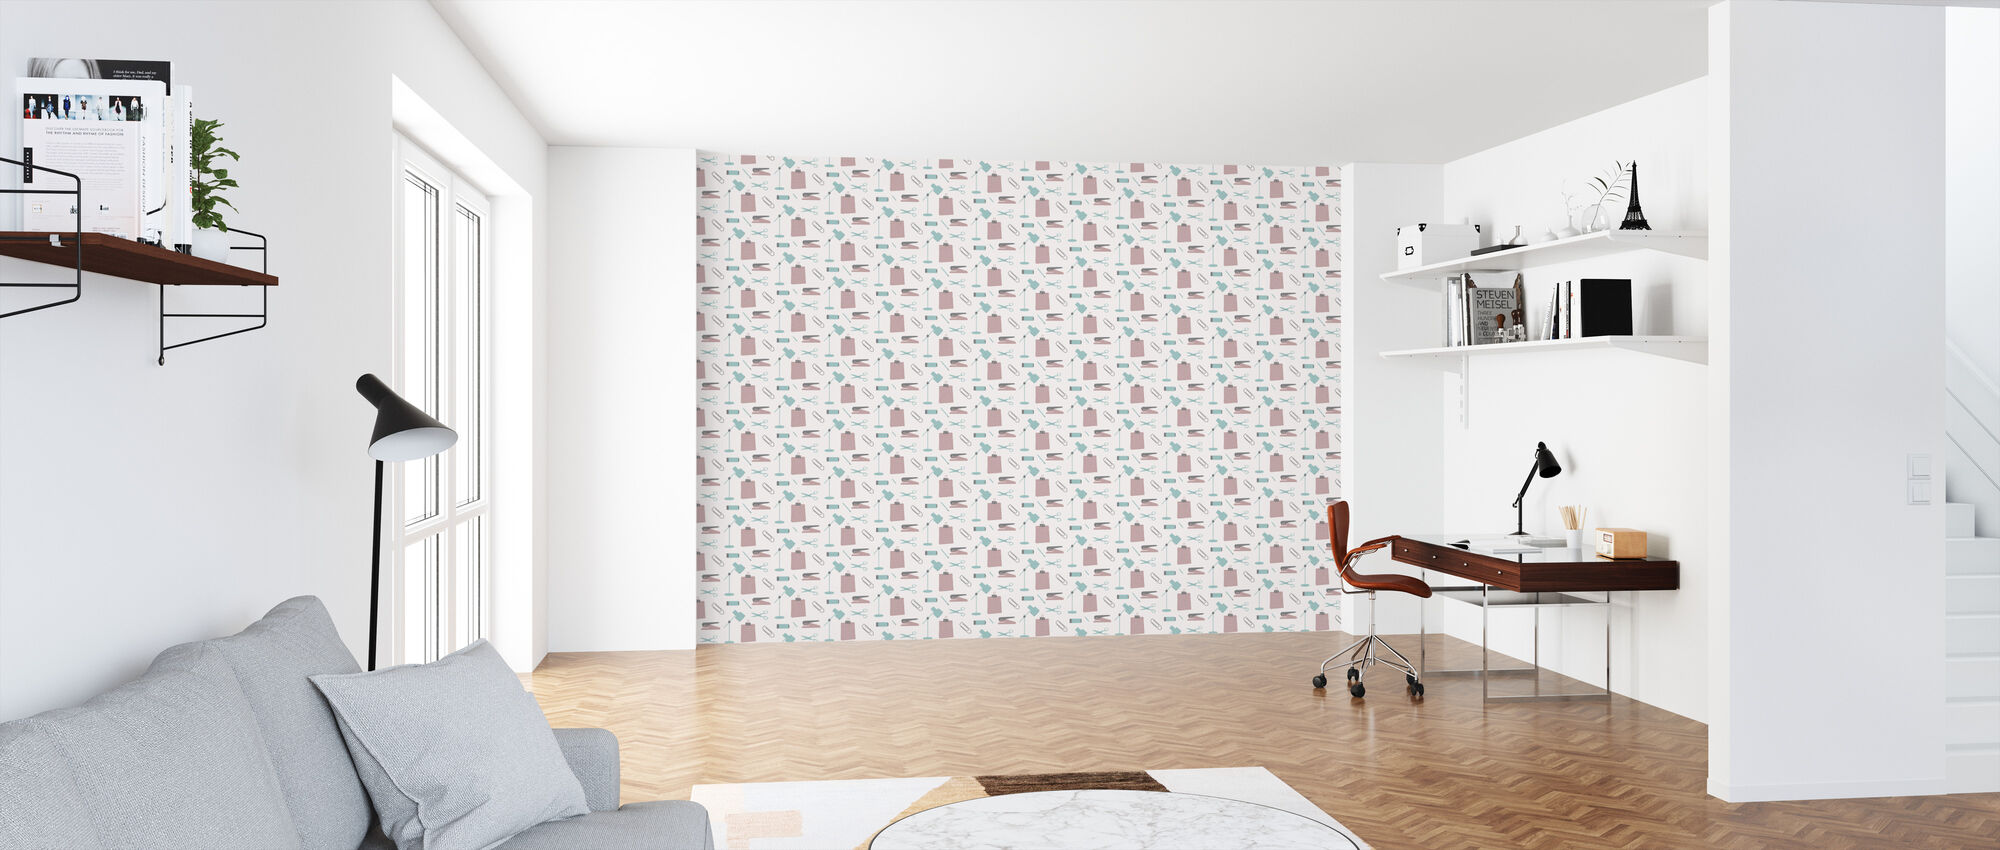 Dalston Office II - Wallpaper - Office